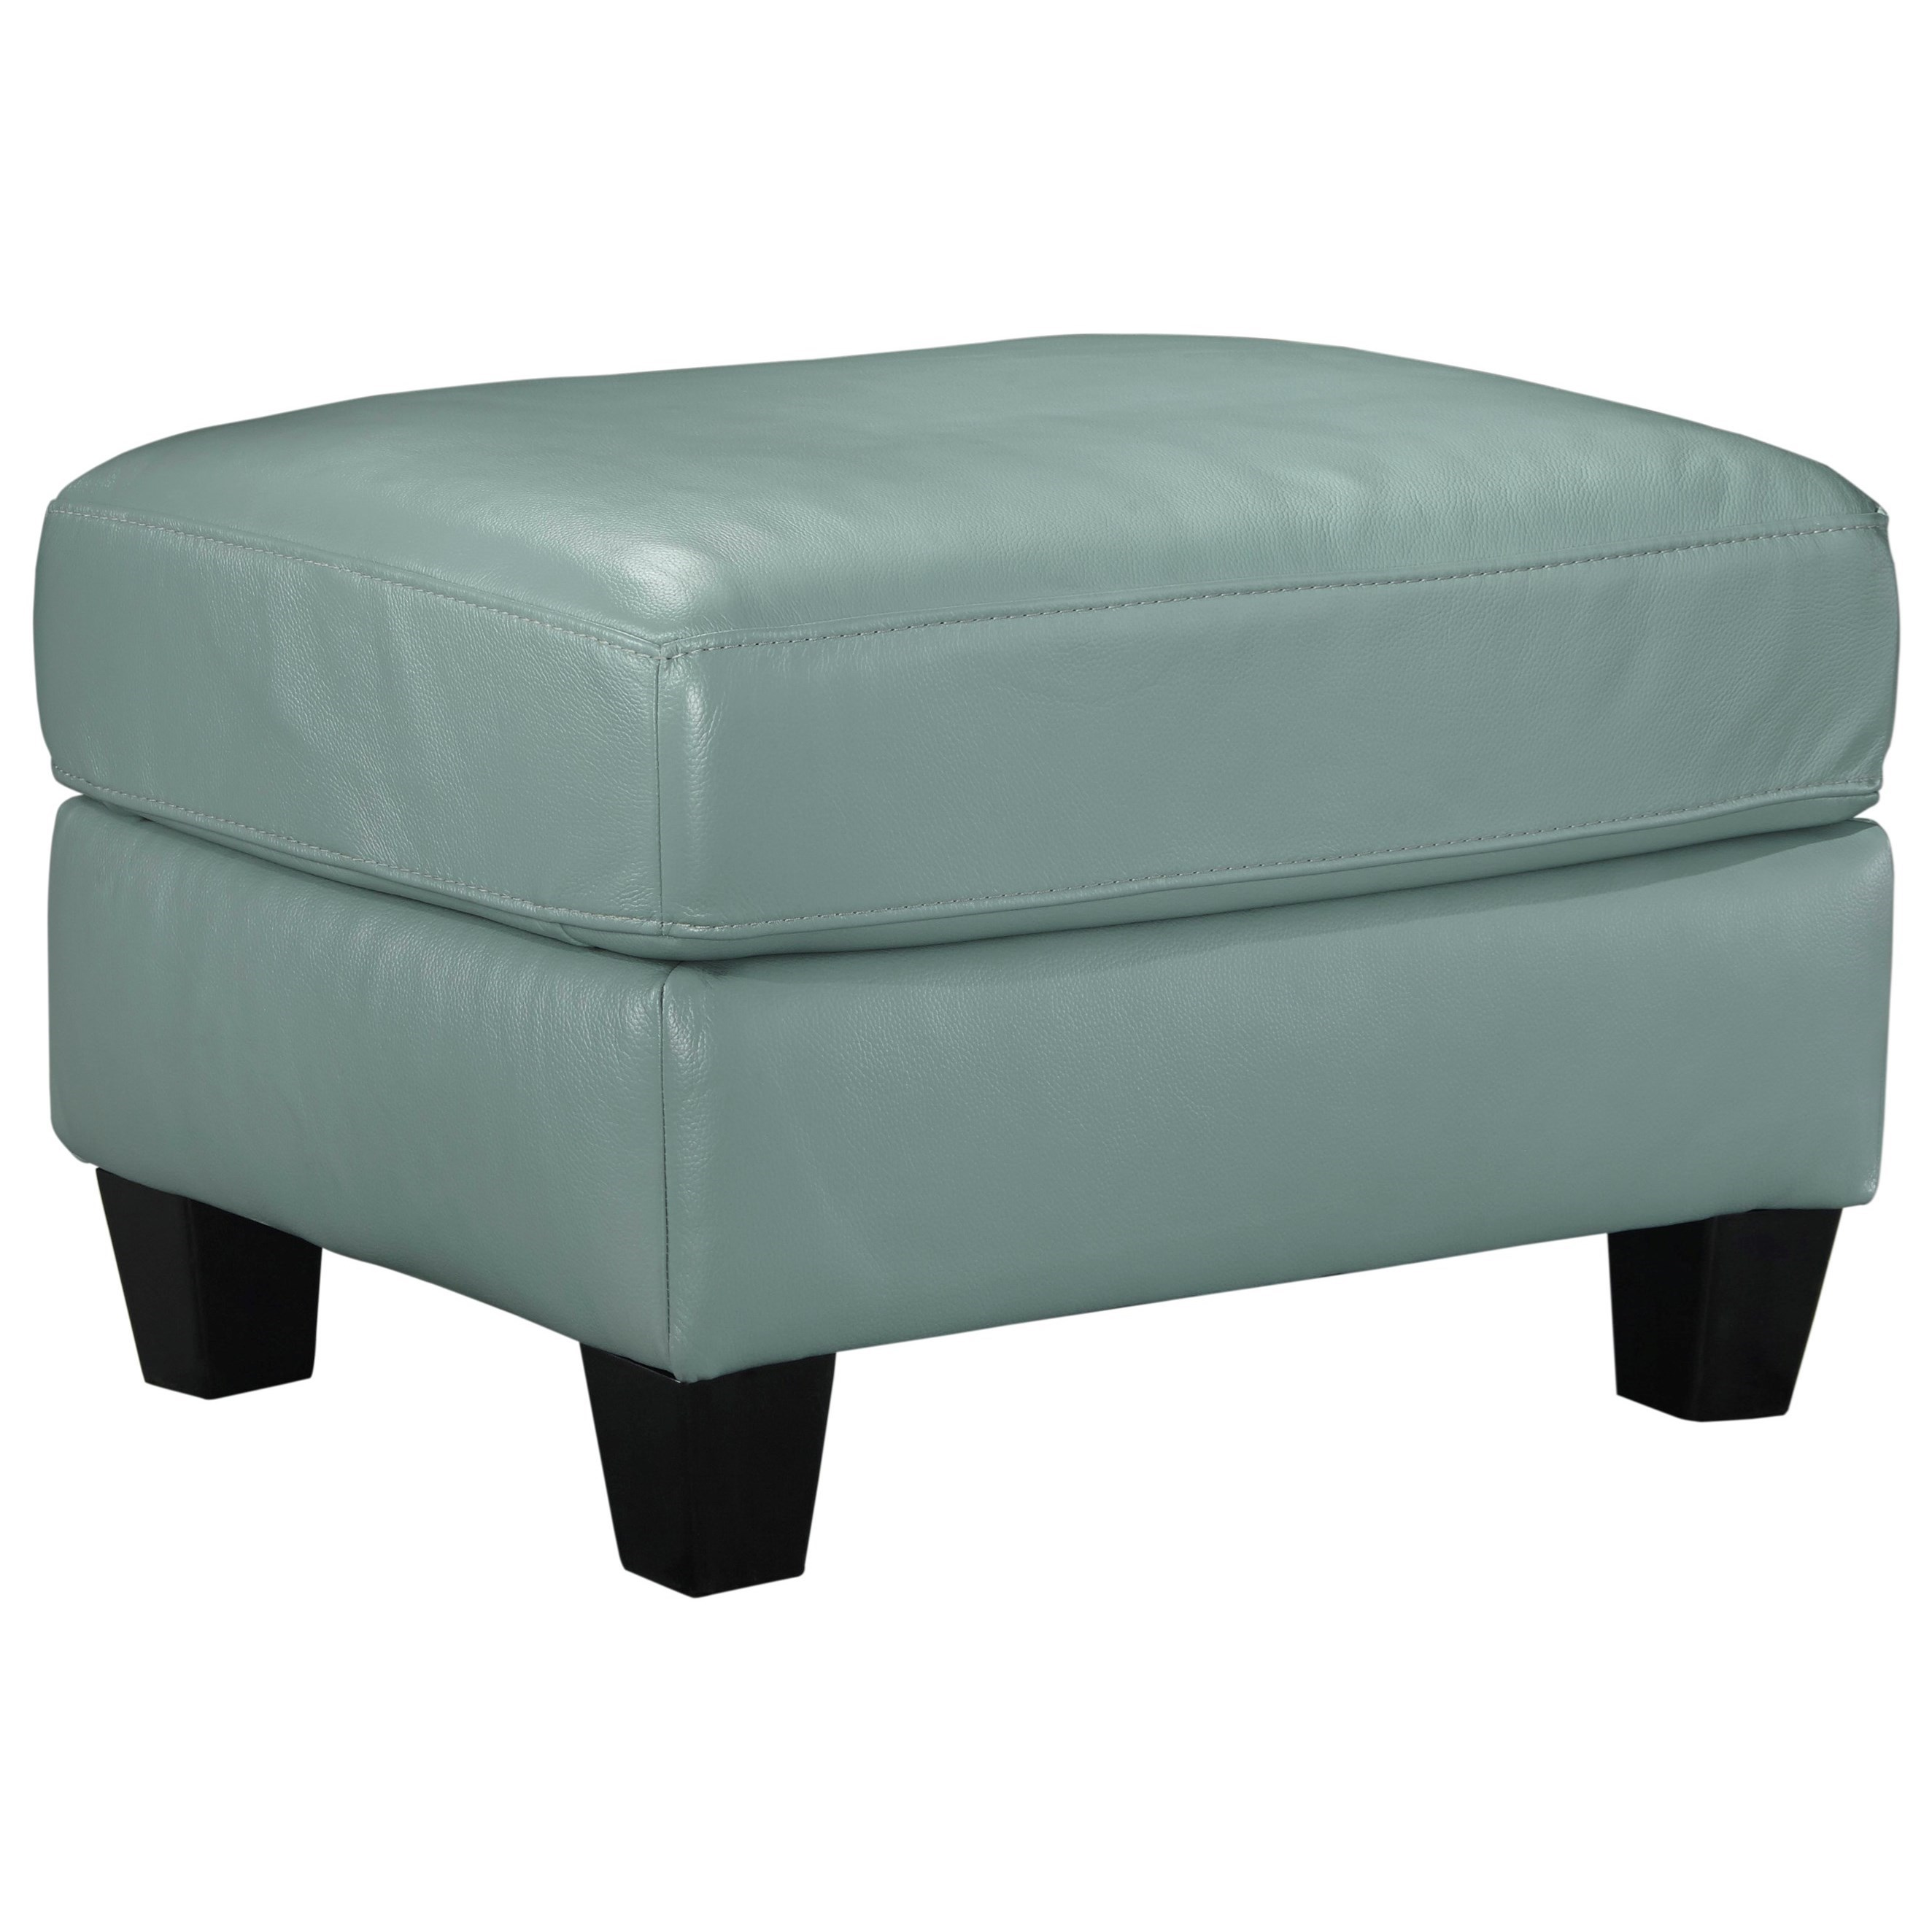 Signature Design by Ashley O'Kean Ottoman - Item Number: 5910314